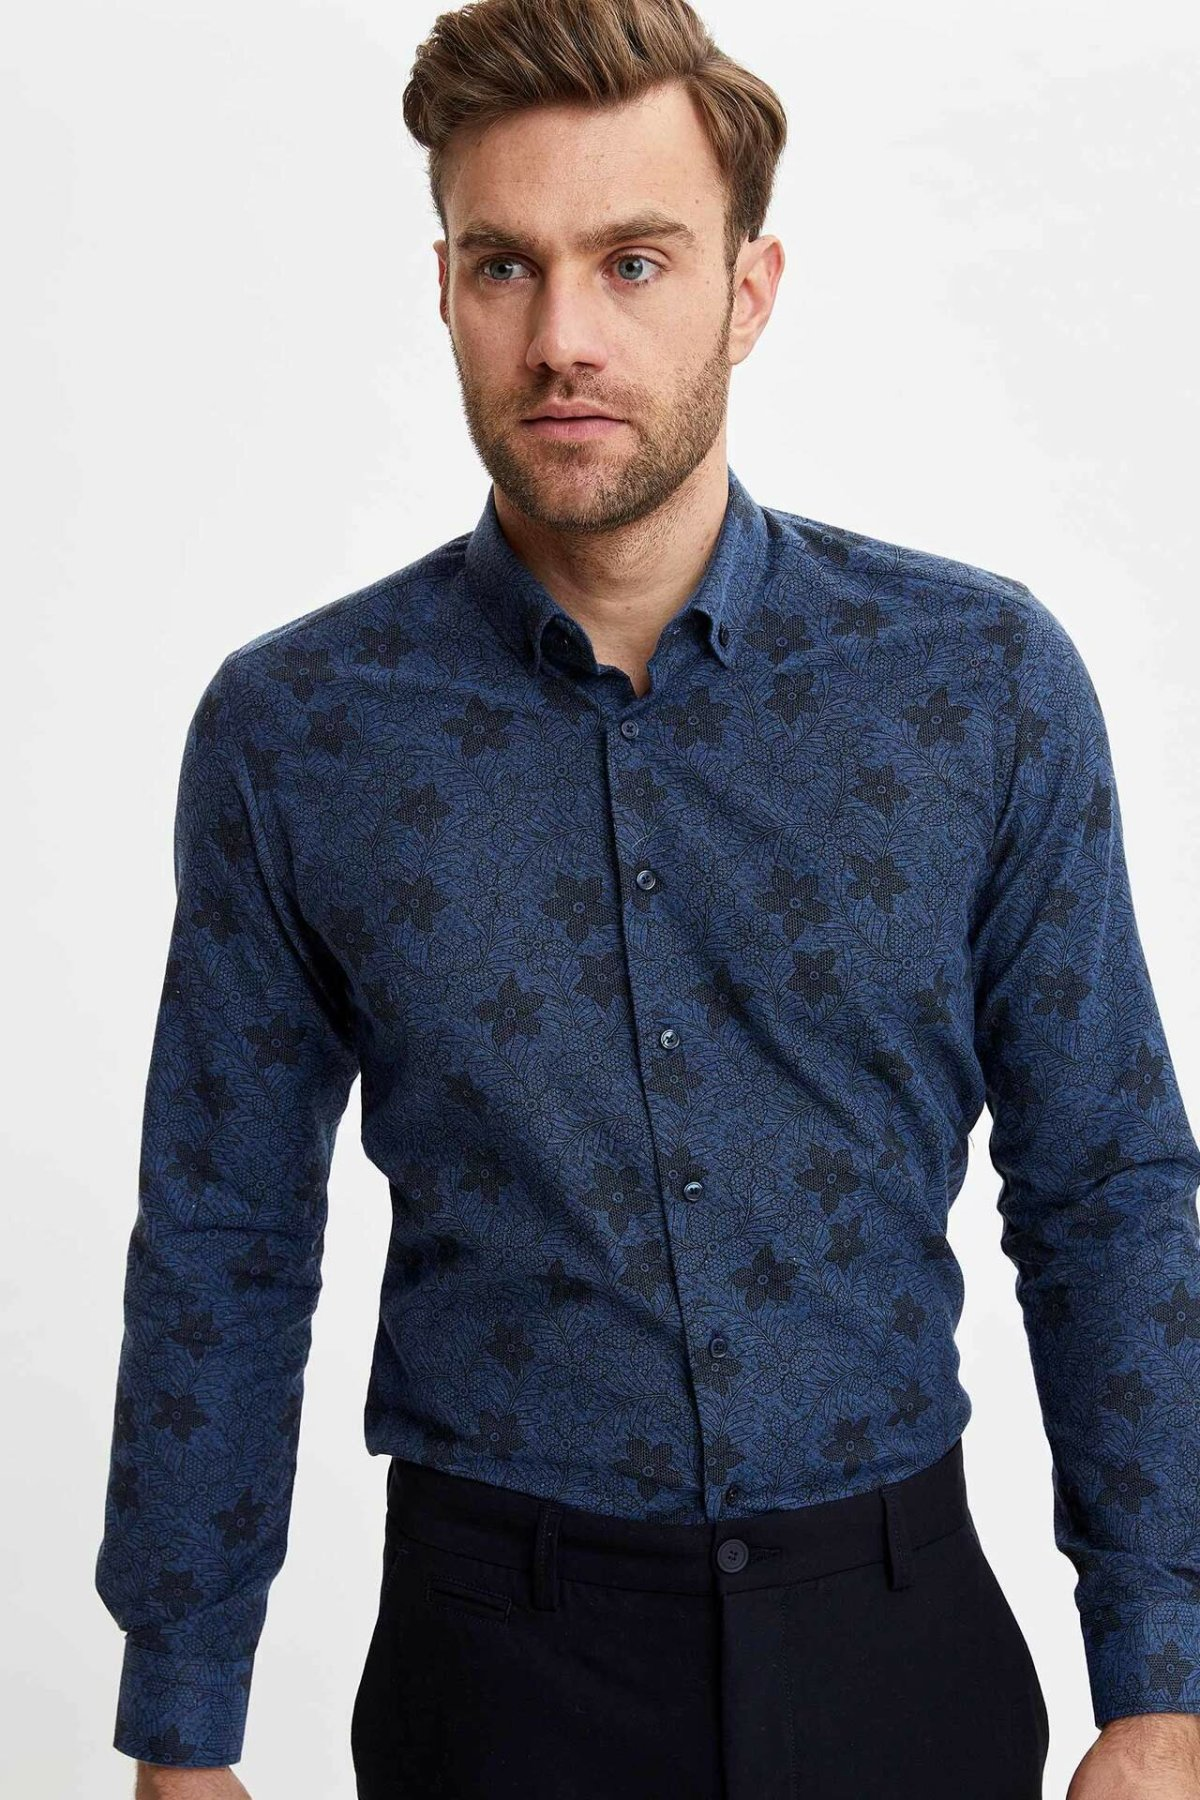 DeFacto Man Casual Dark Blue Shirts Men Floral Print Top Shirts Men Smart Casual Long Sleeve Shirt-N2679AZ19CW